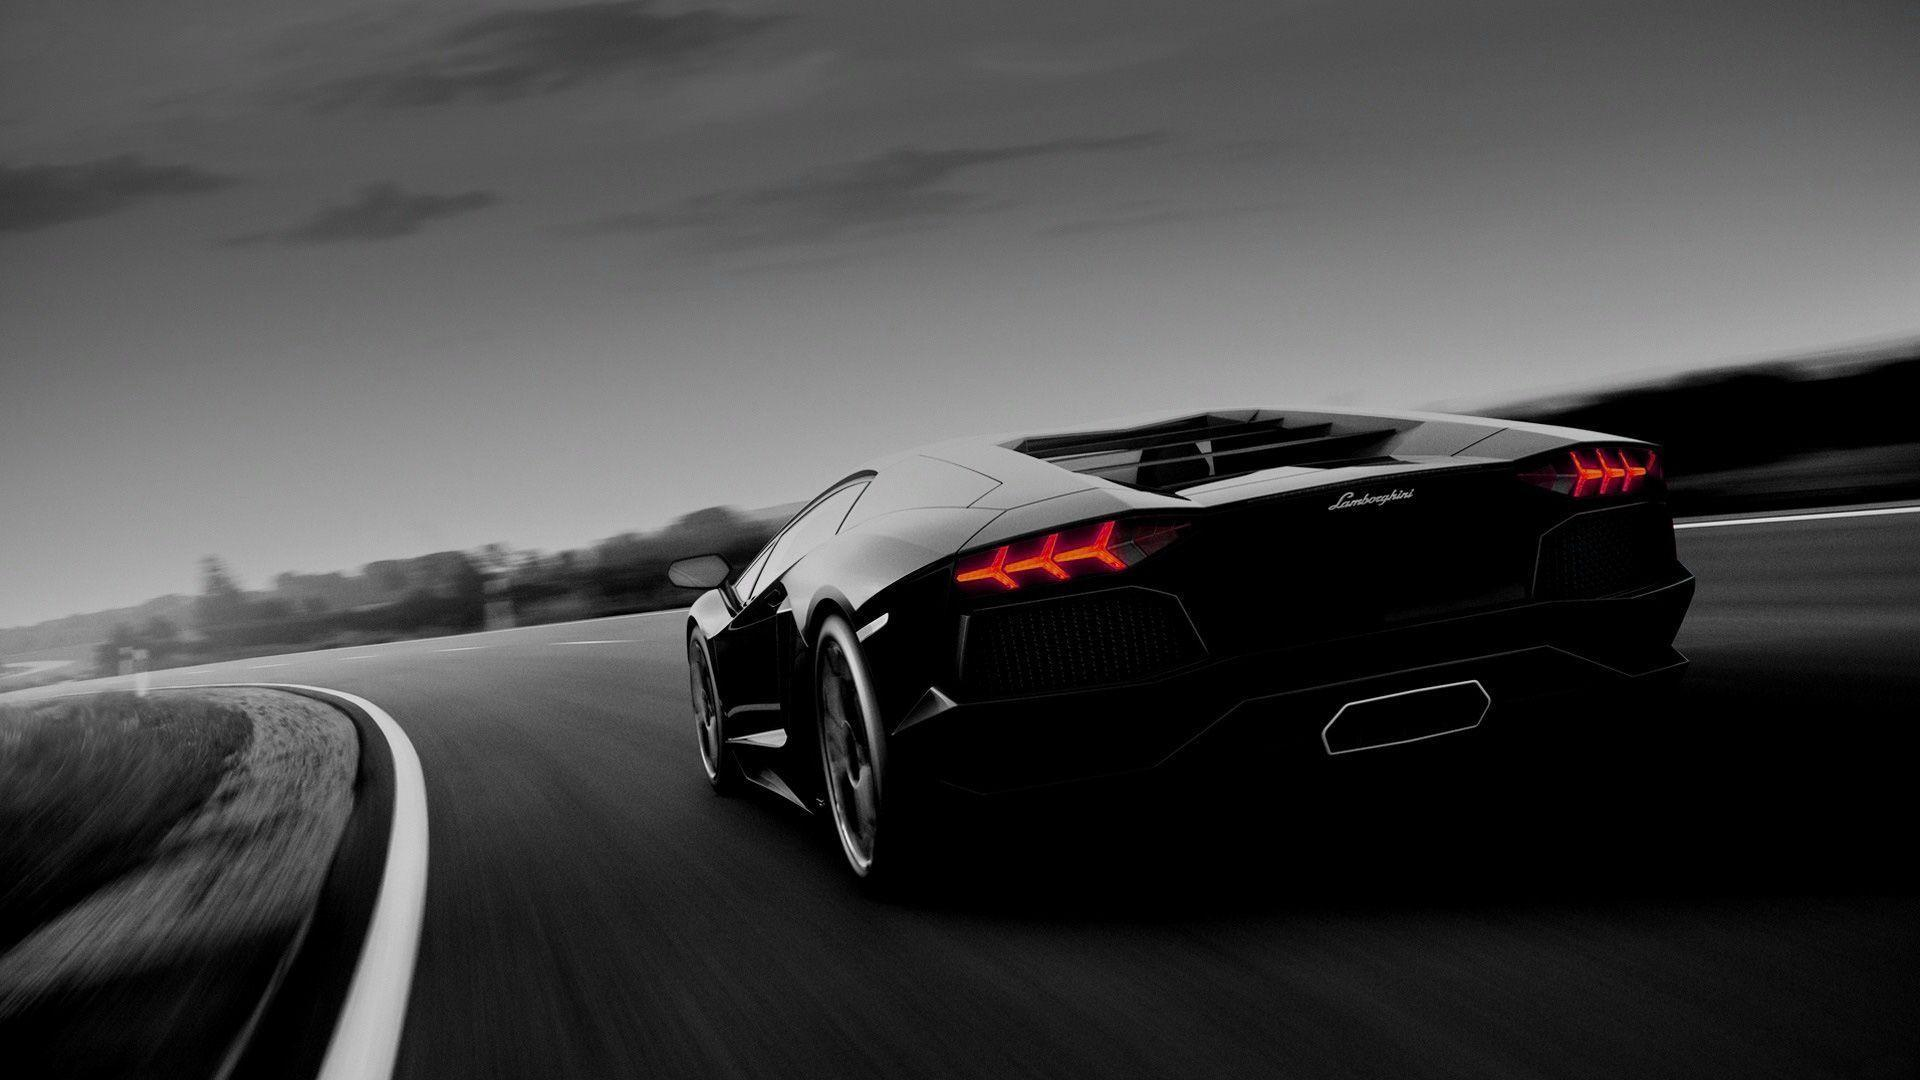 new lamborghini aventador black hd wallpaper new lamborghini